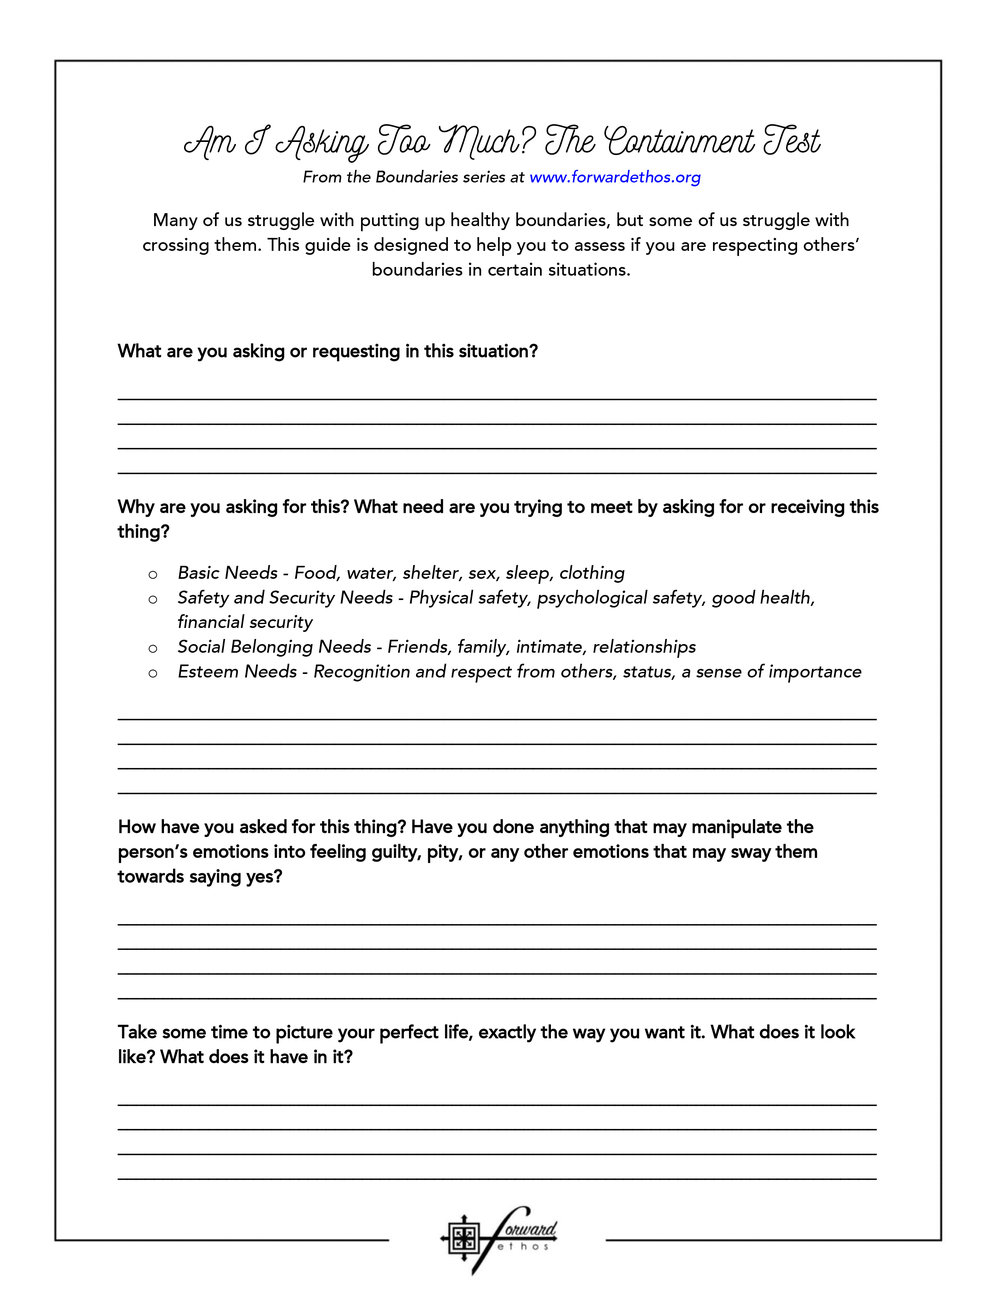 Boundaries Worksheet 04-1.jpg